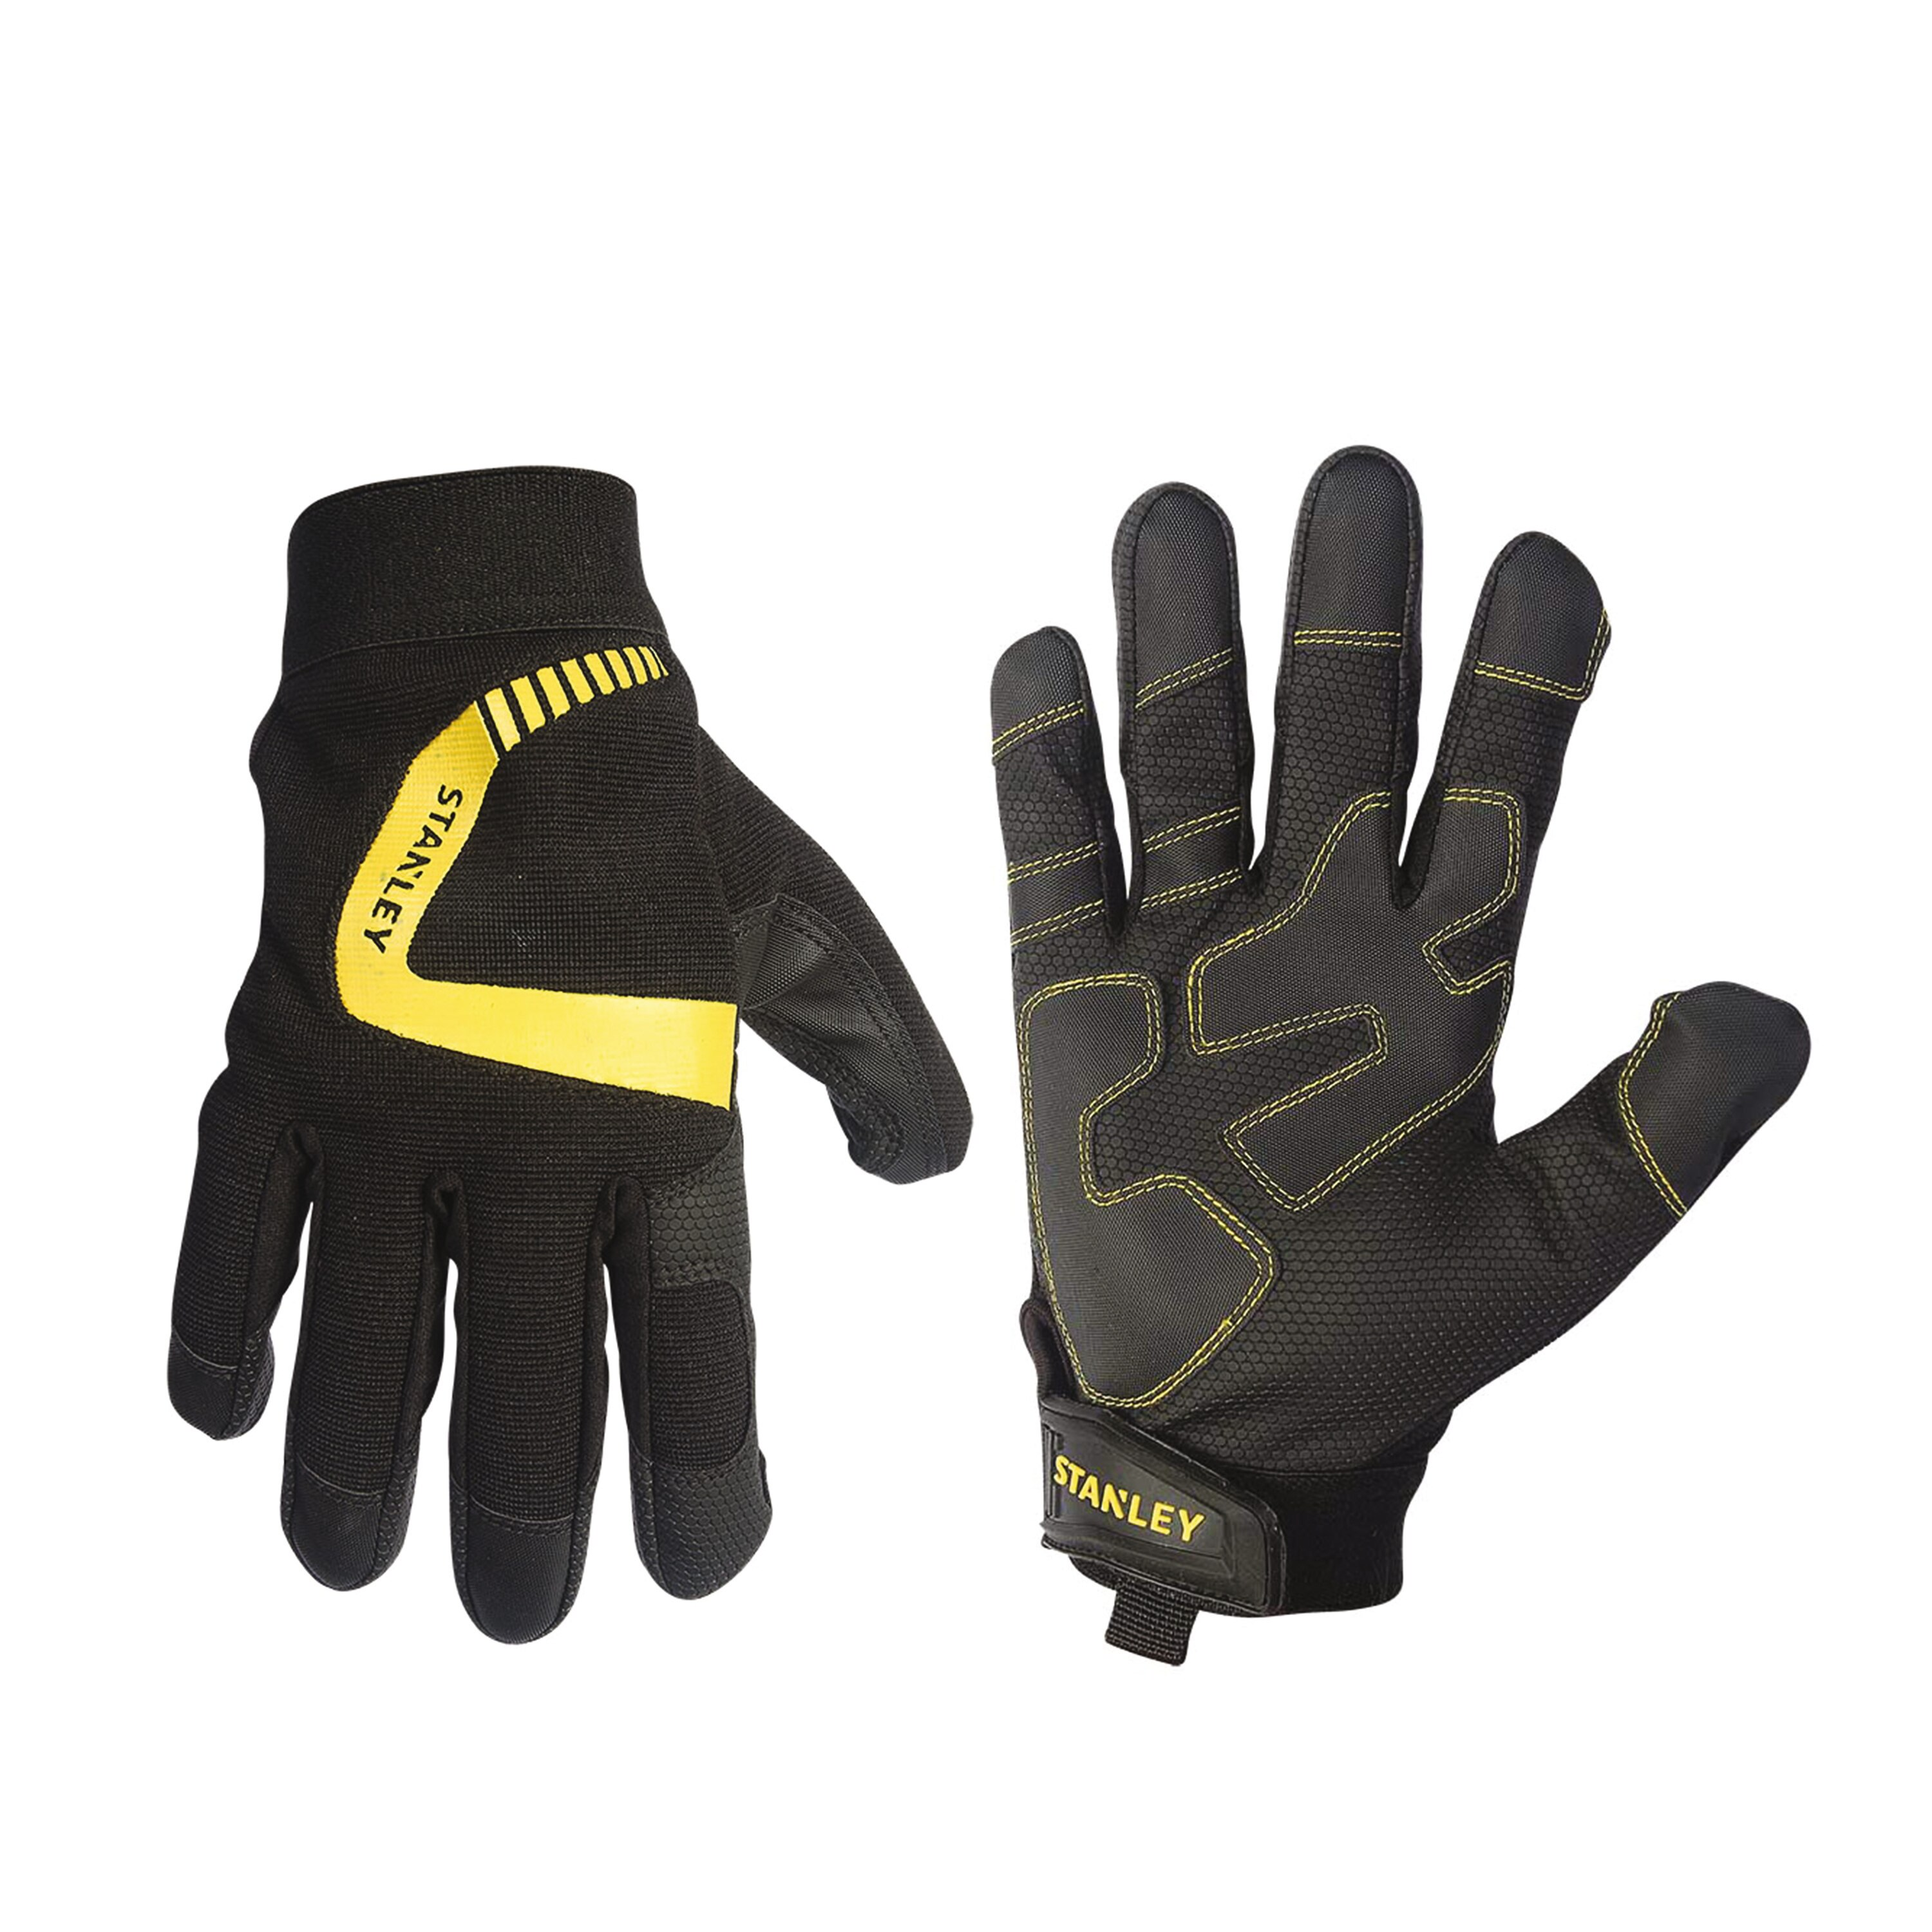 Stanley Tools - Performance Gripper Gloves Digital Polyurethane Palm with Reinforcements - S77621